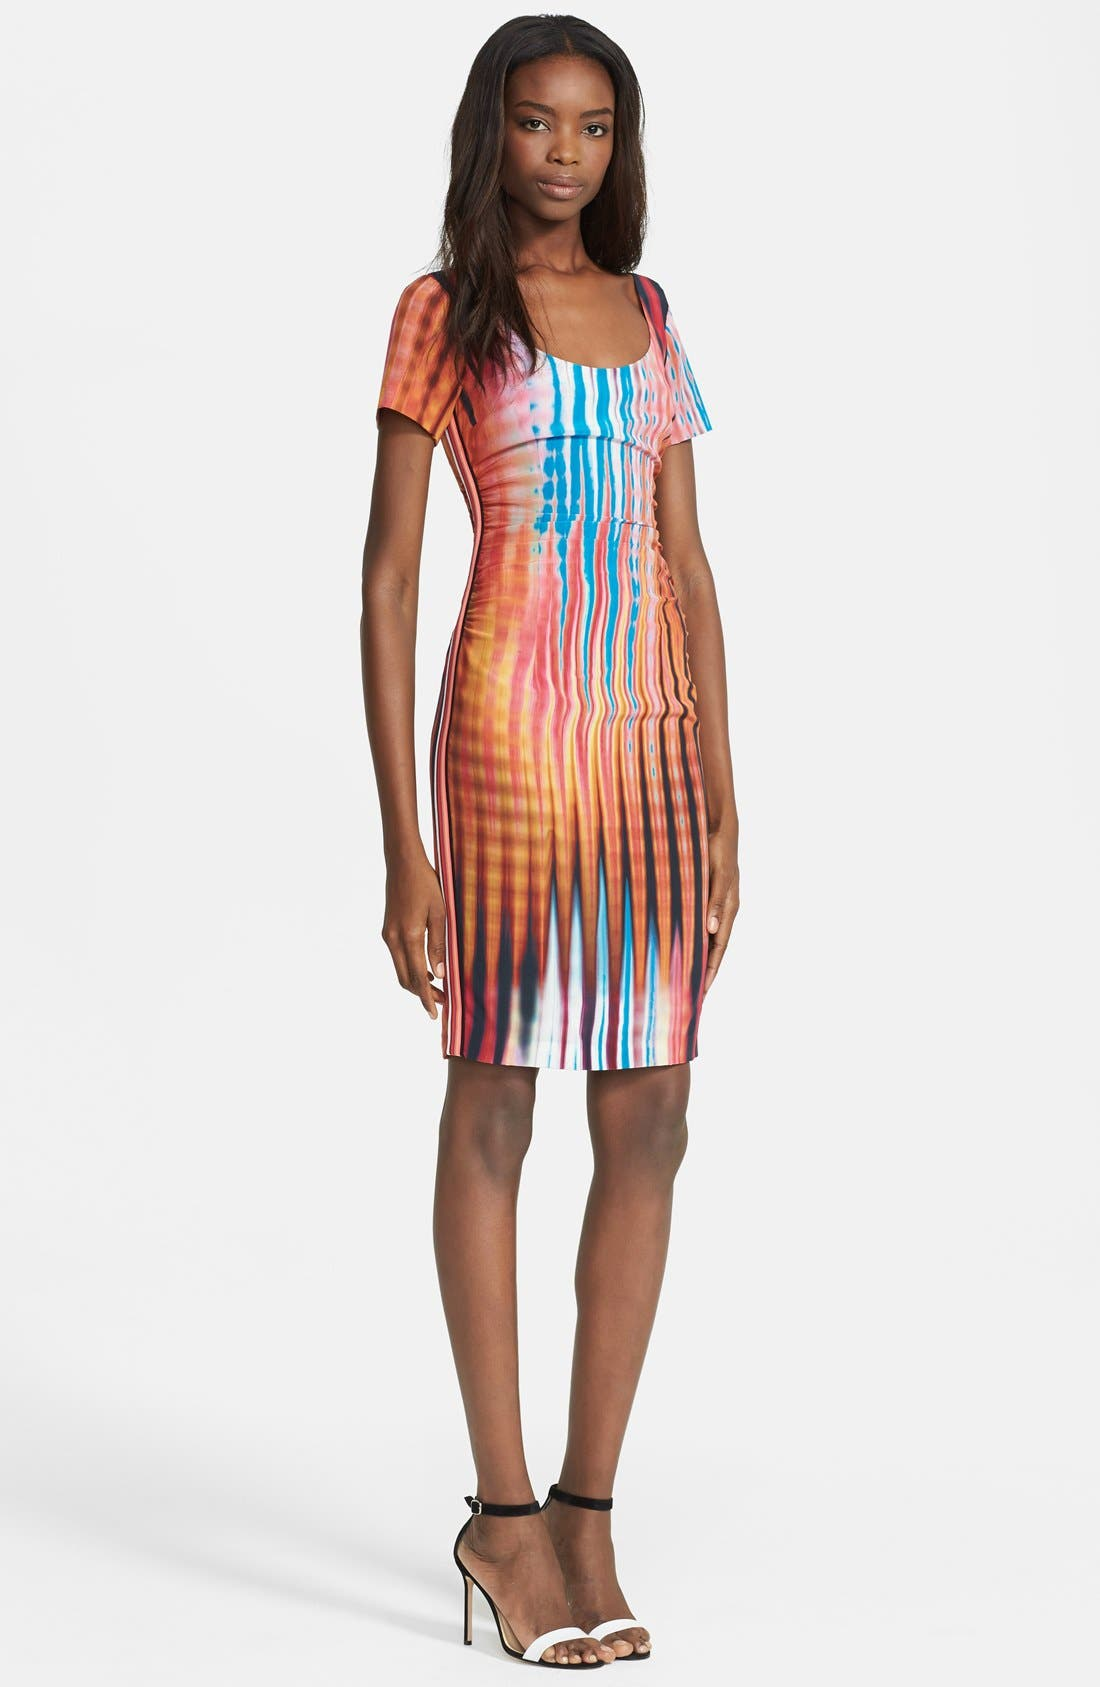 Tracy Reese 'T' Stretch Crepe Dress